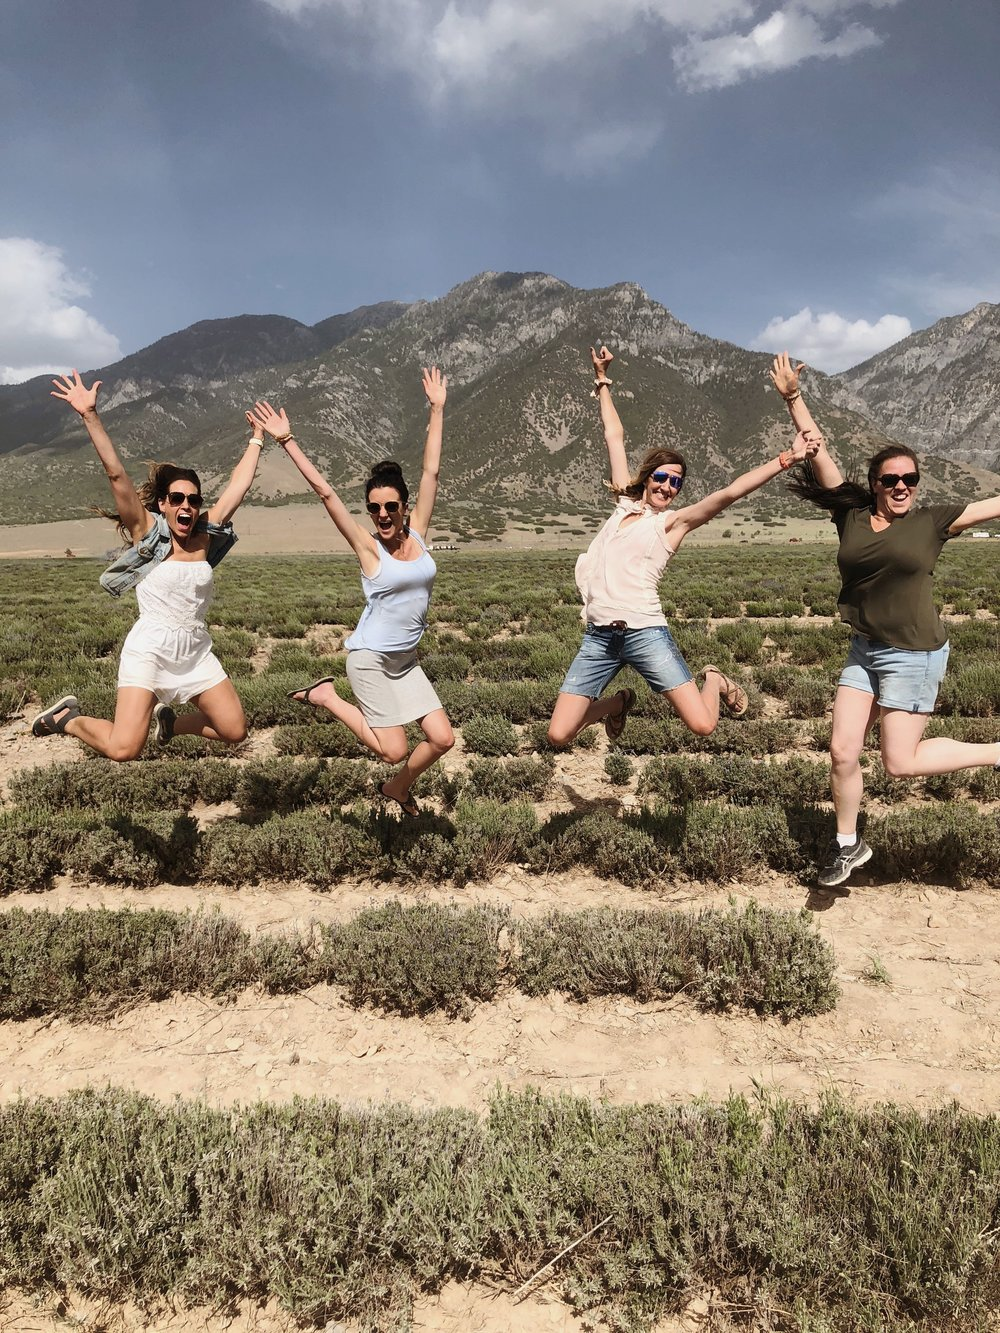 Some of our sweet team in Mona, Utah, leaping in the lavender fields…it smelled AMAZING!